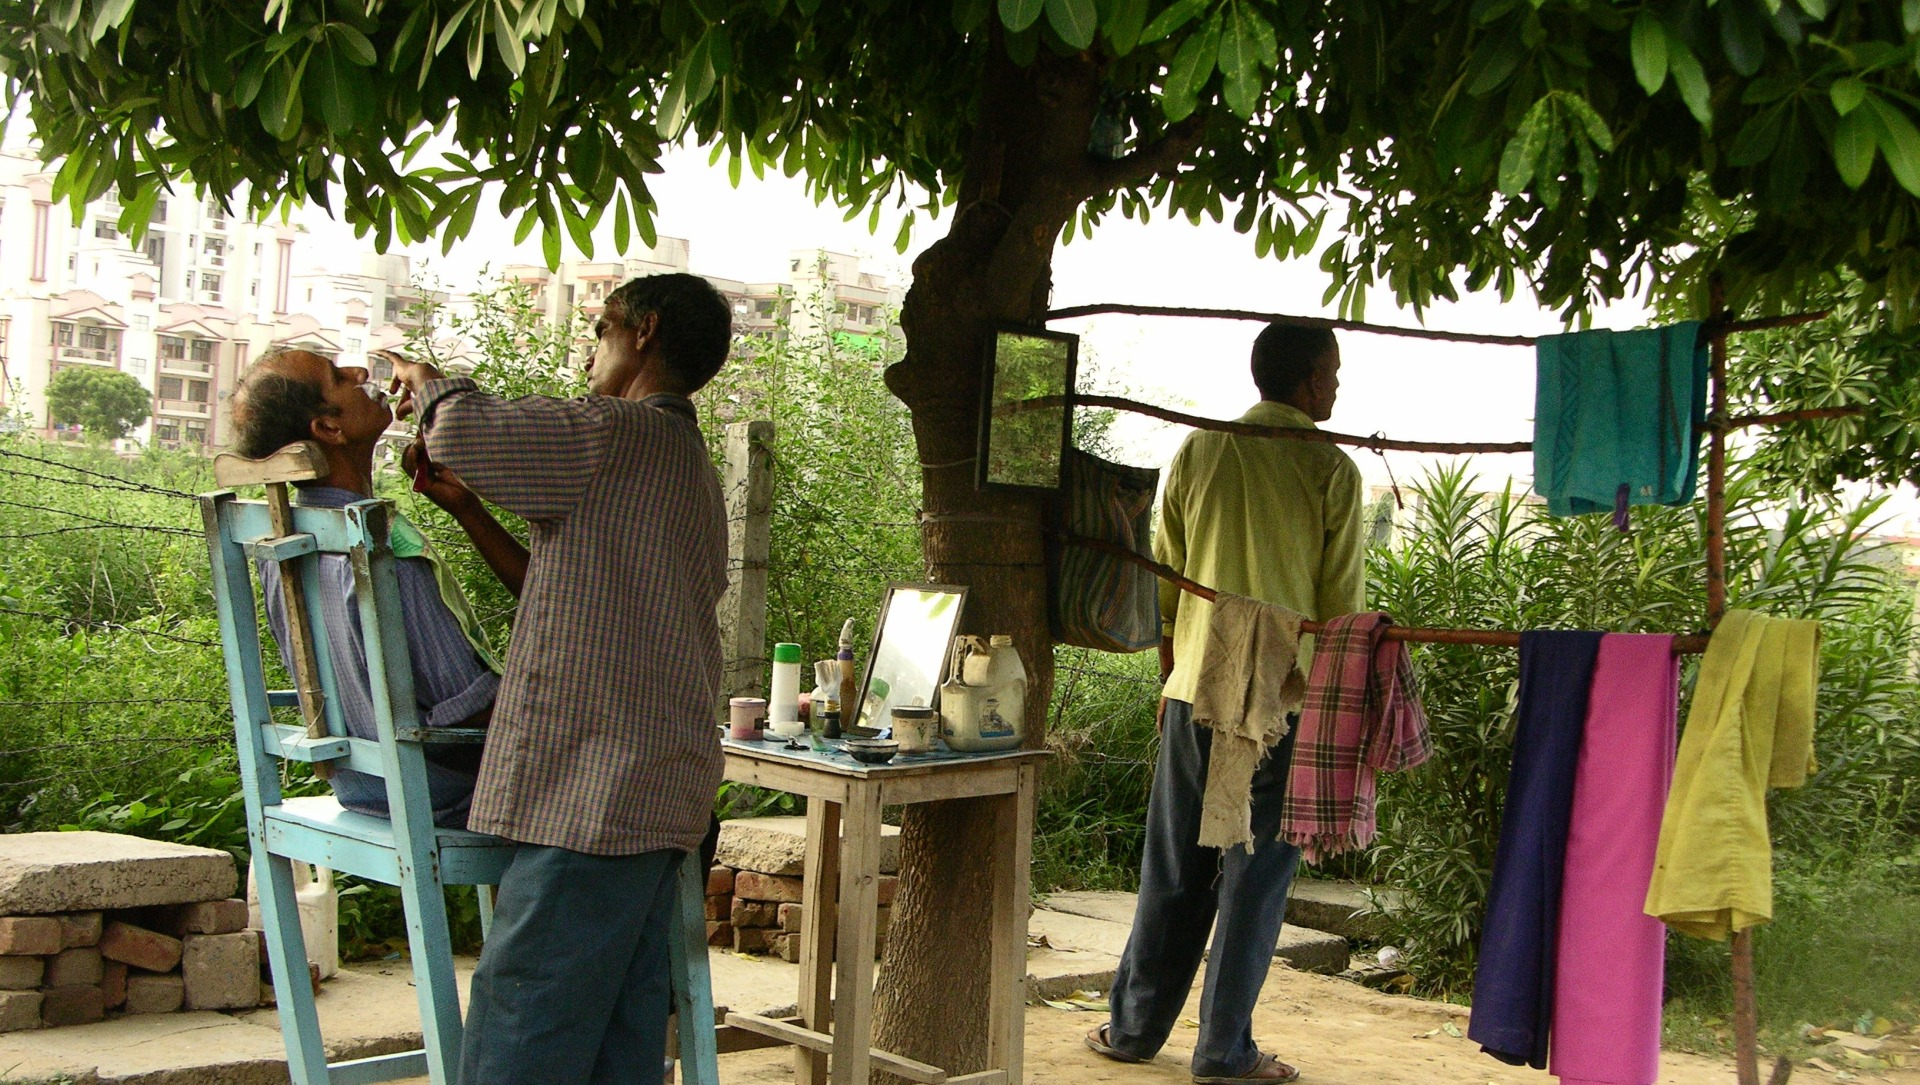 Branch Offices: The Working Trees of Delhi